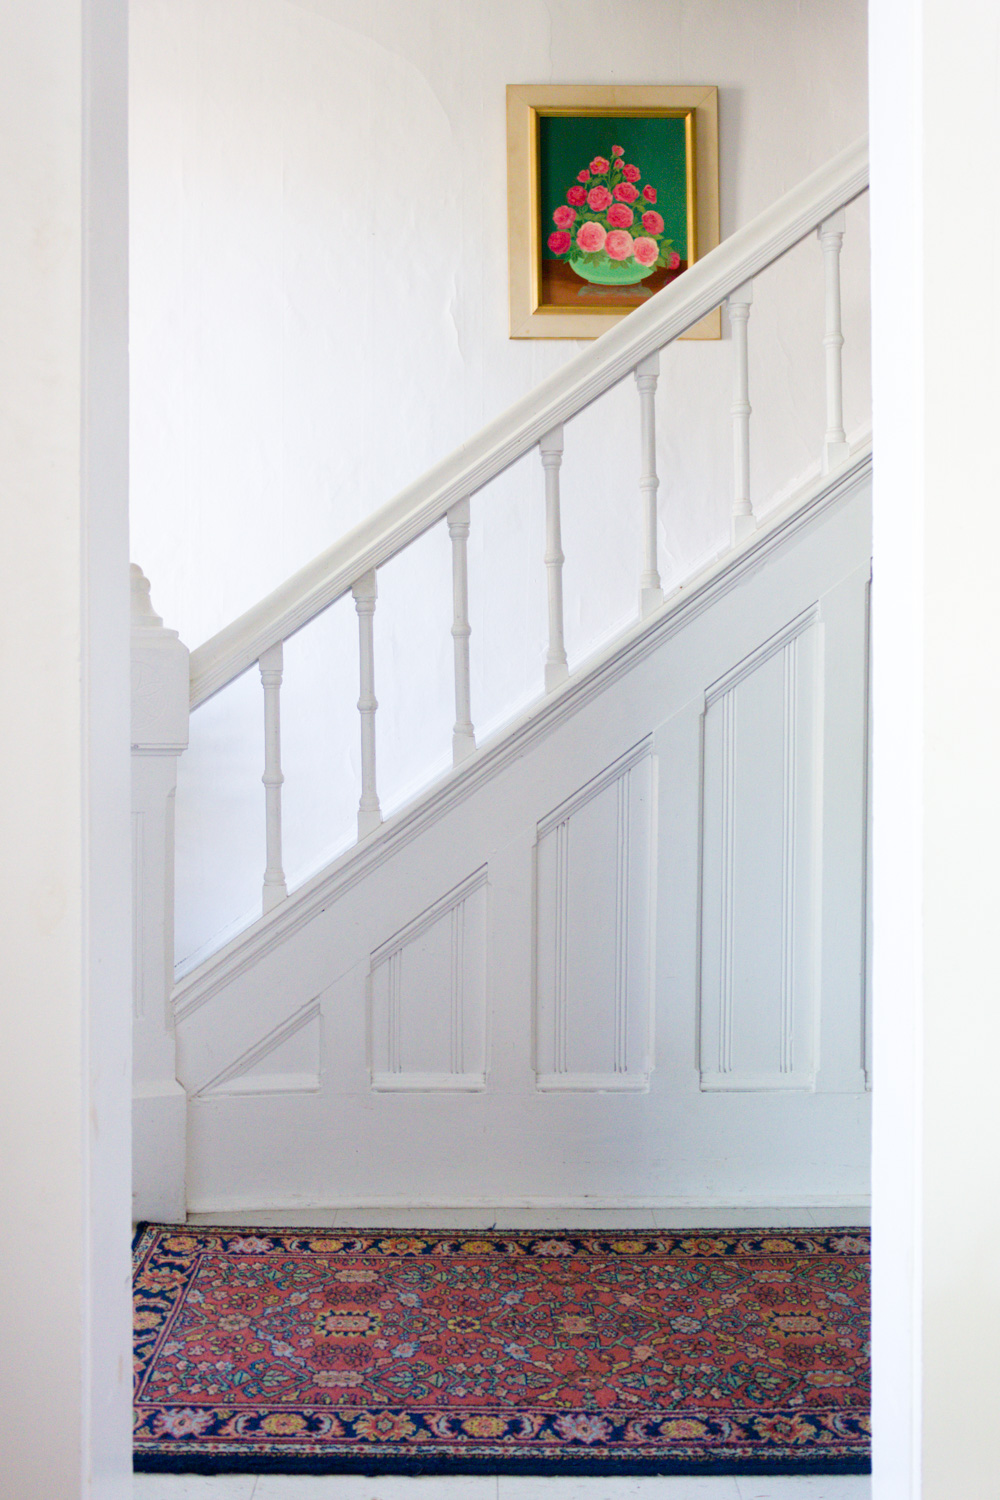 Copy of Entryway Stairs with Vintage Pink and Green Floral Still-life Painting